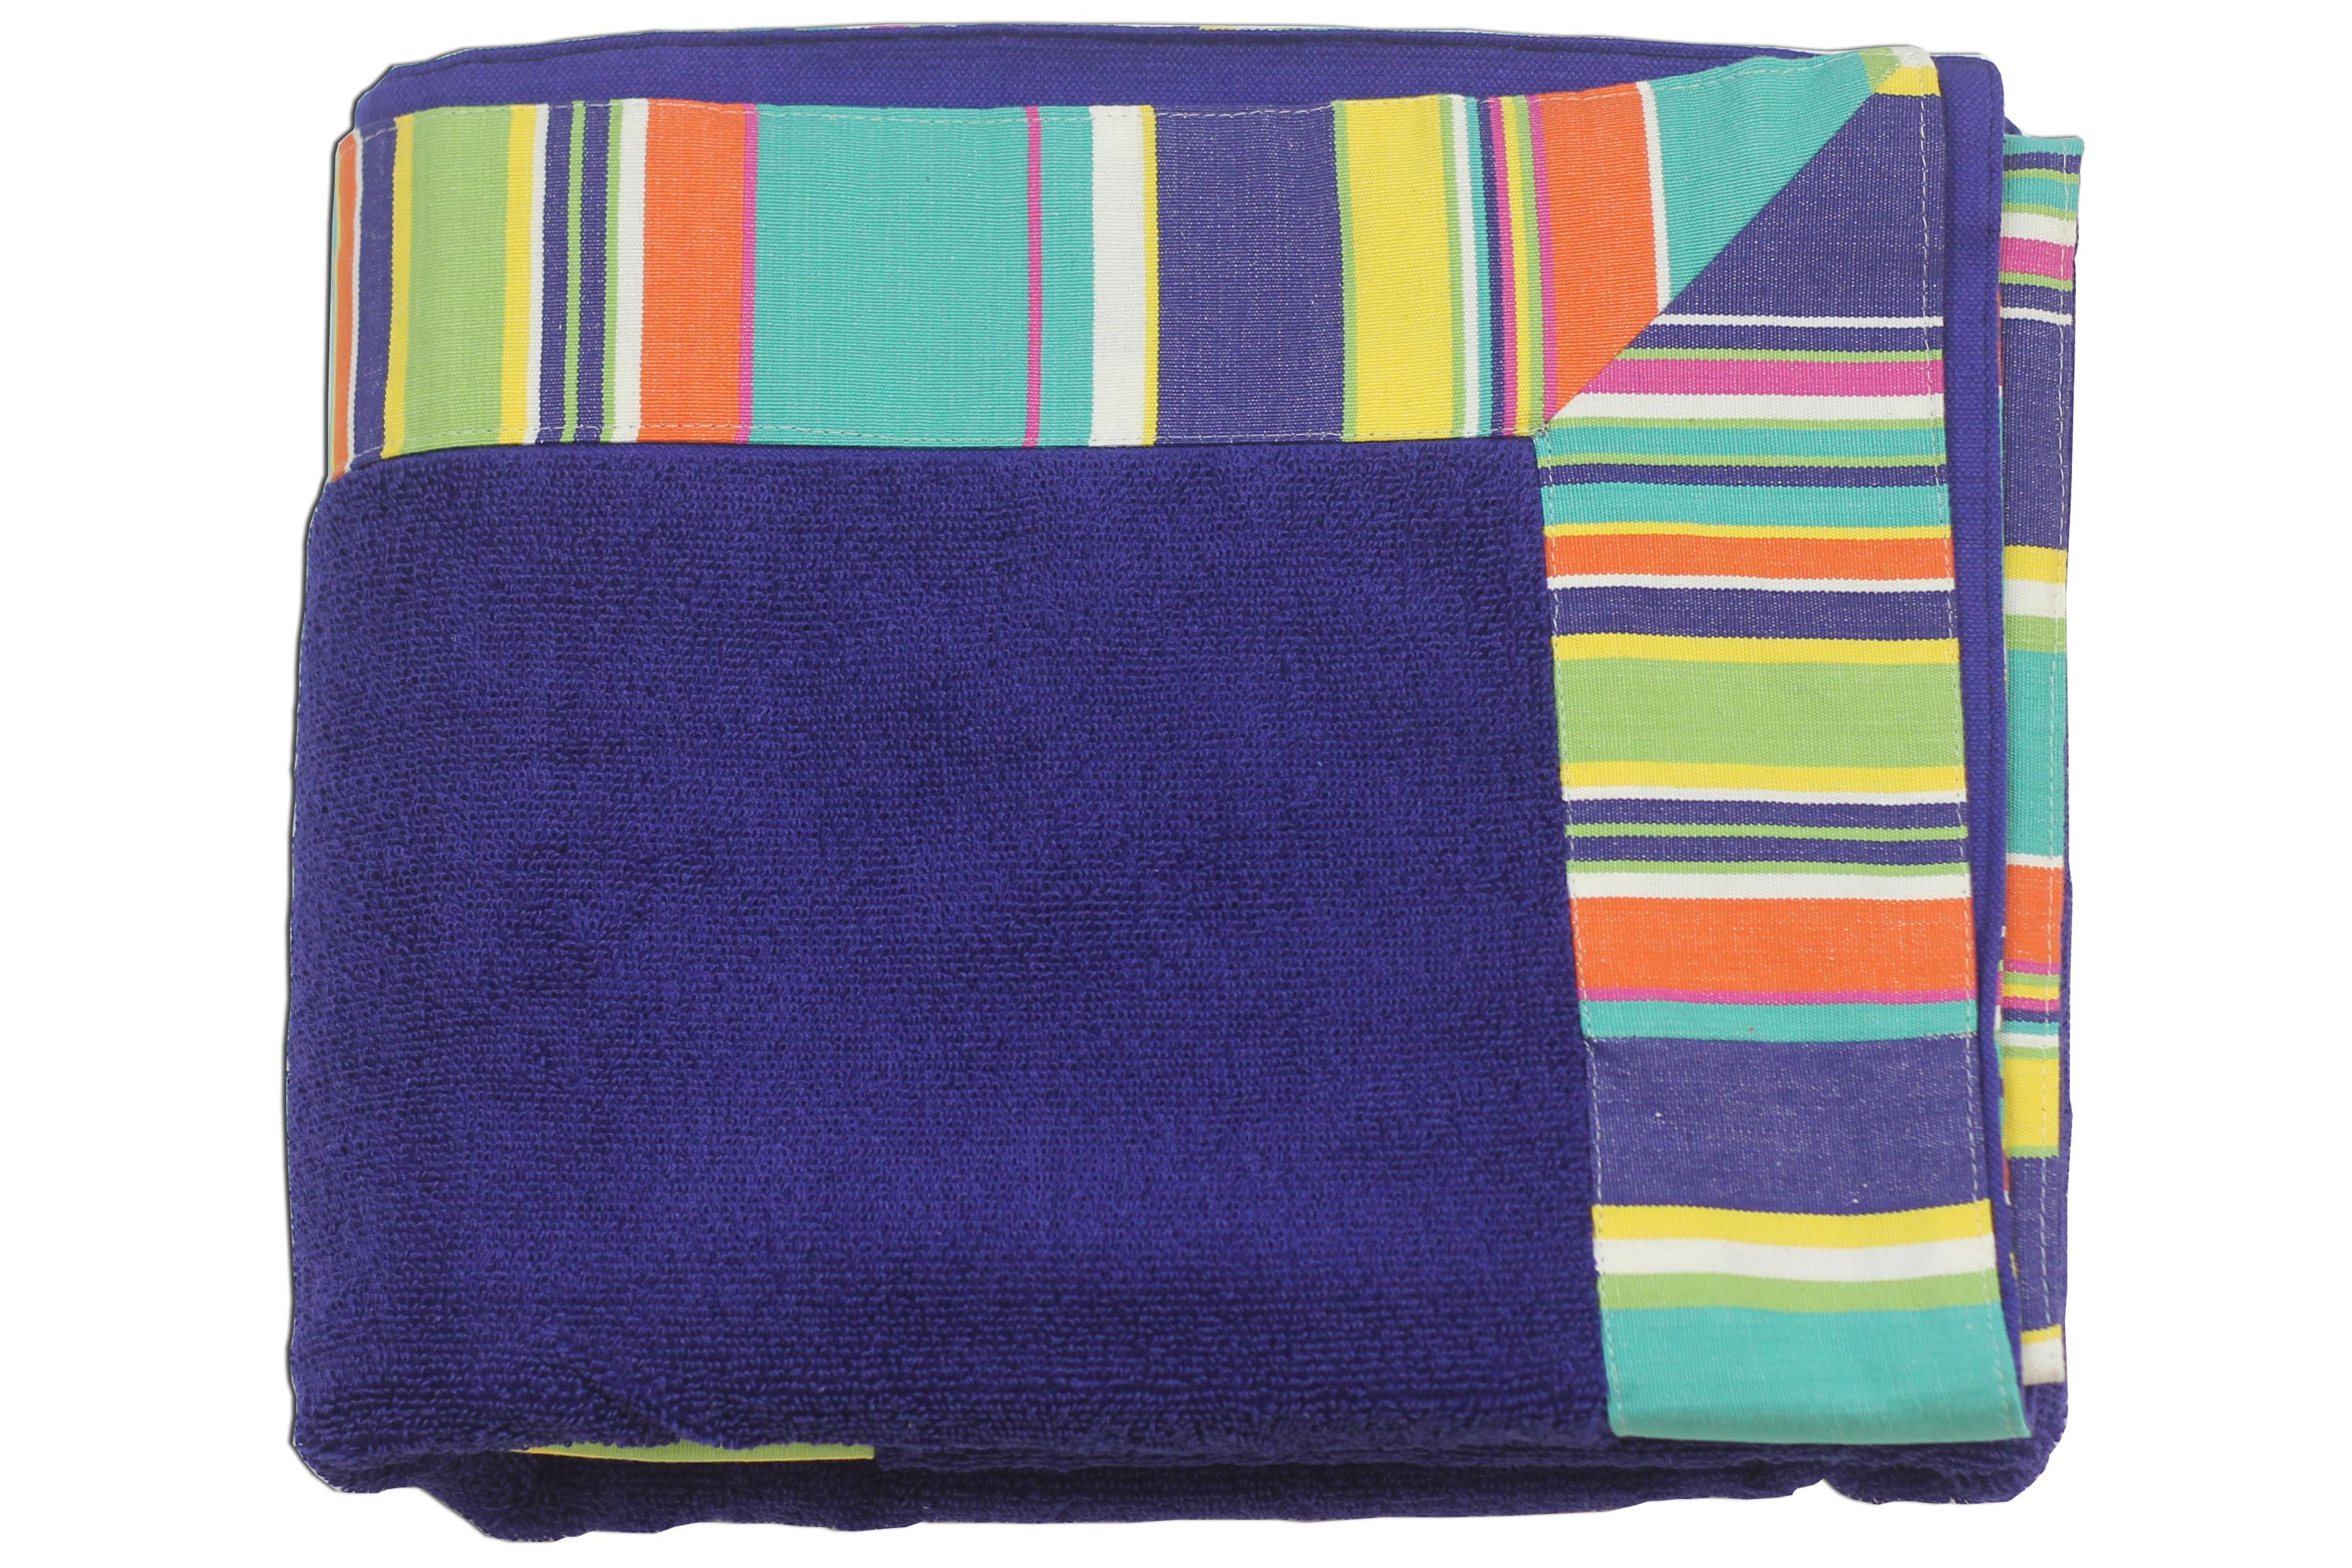 Extra Large Royal Blue Beach Towels | Extra Large Blue Beach Towels with Striped Border Royal Blue Turquoise  Pale Green Stripes